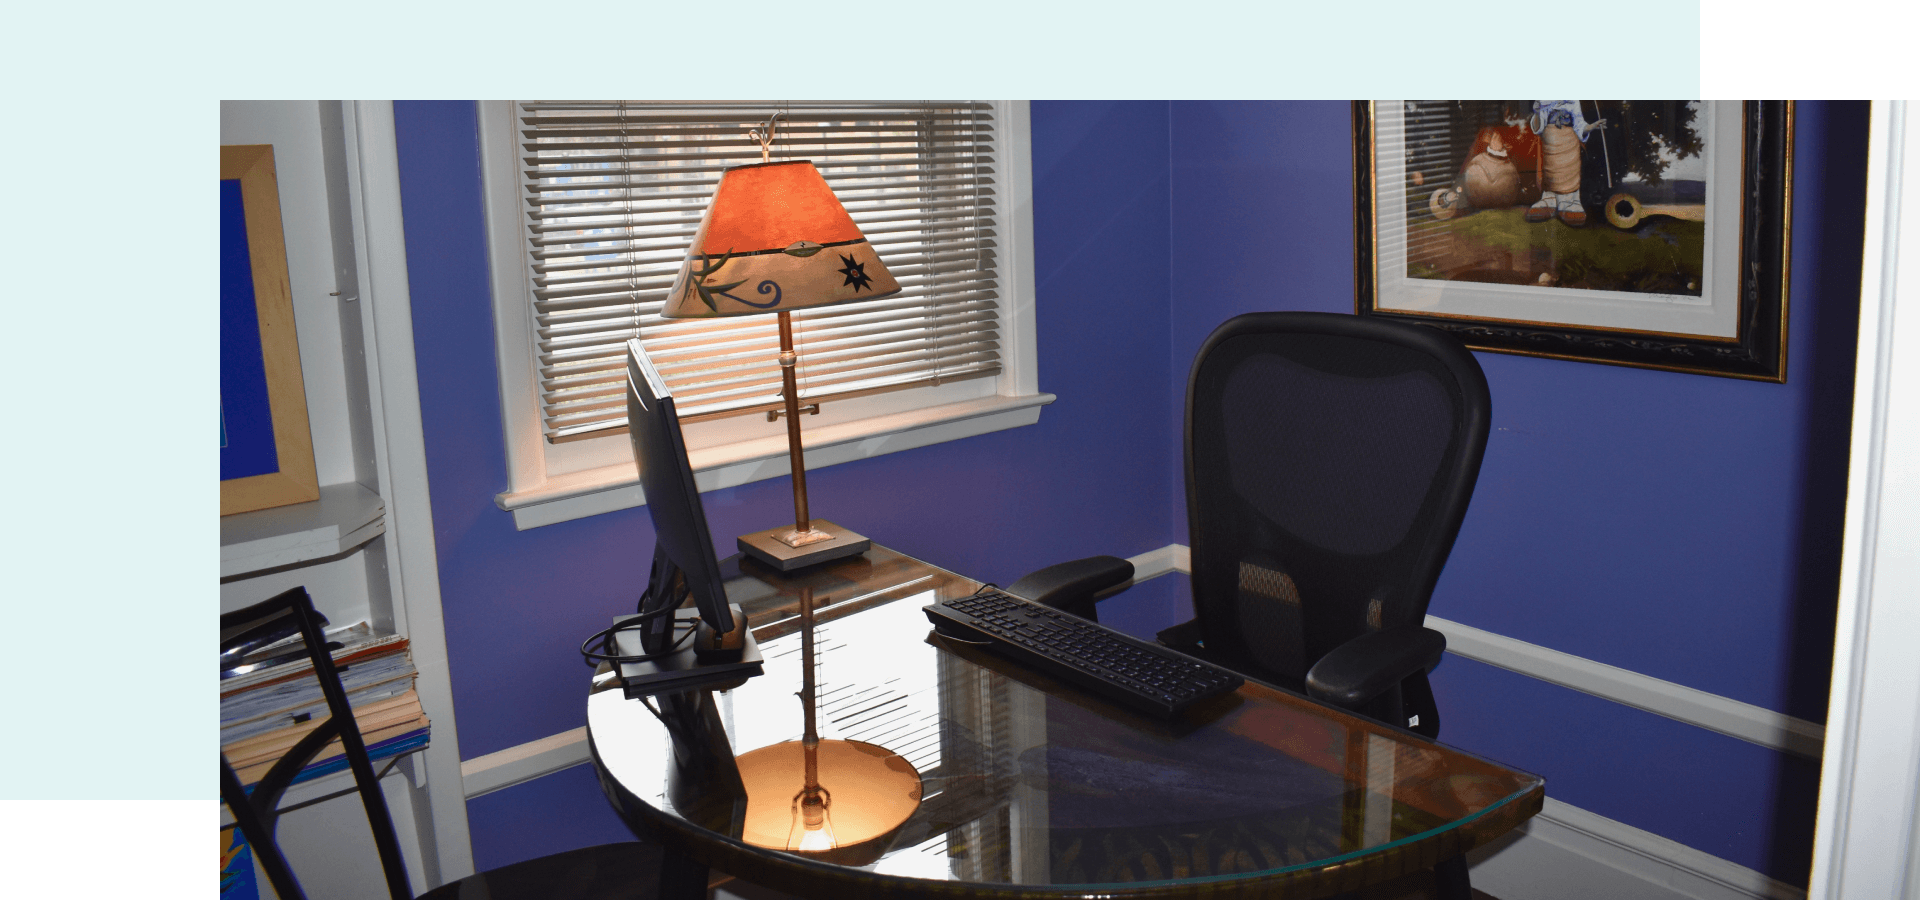 An office with purple walls and a desk, chair and computer